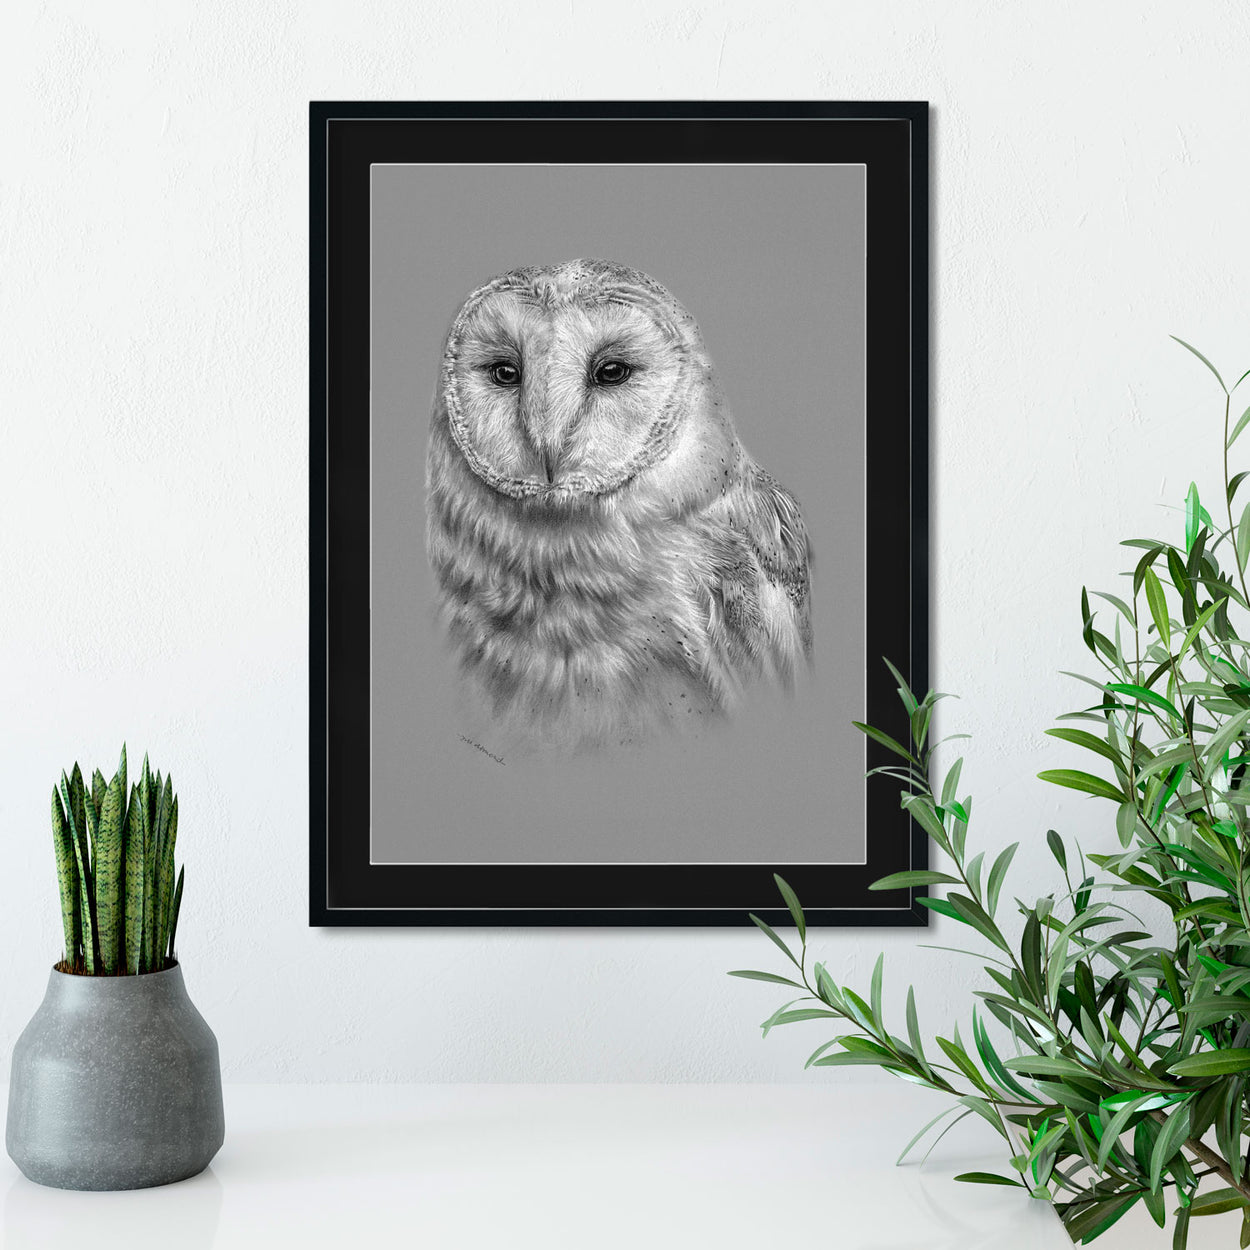 Barn Owl Art Framed On Wall - The Thriving Wild